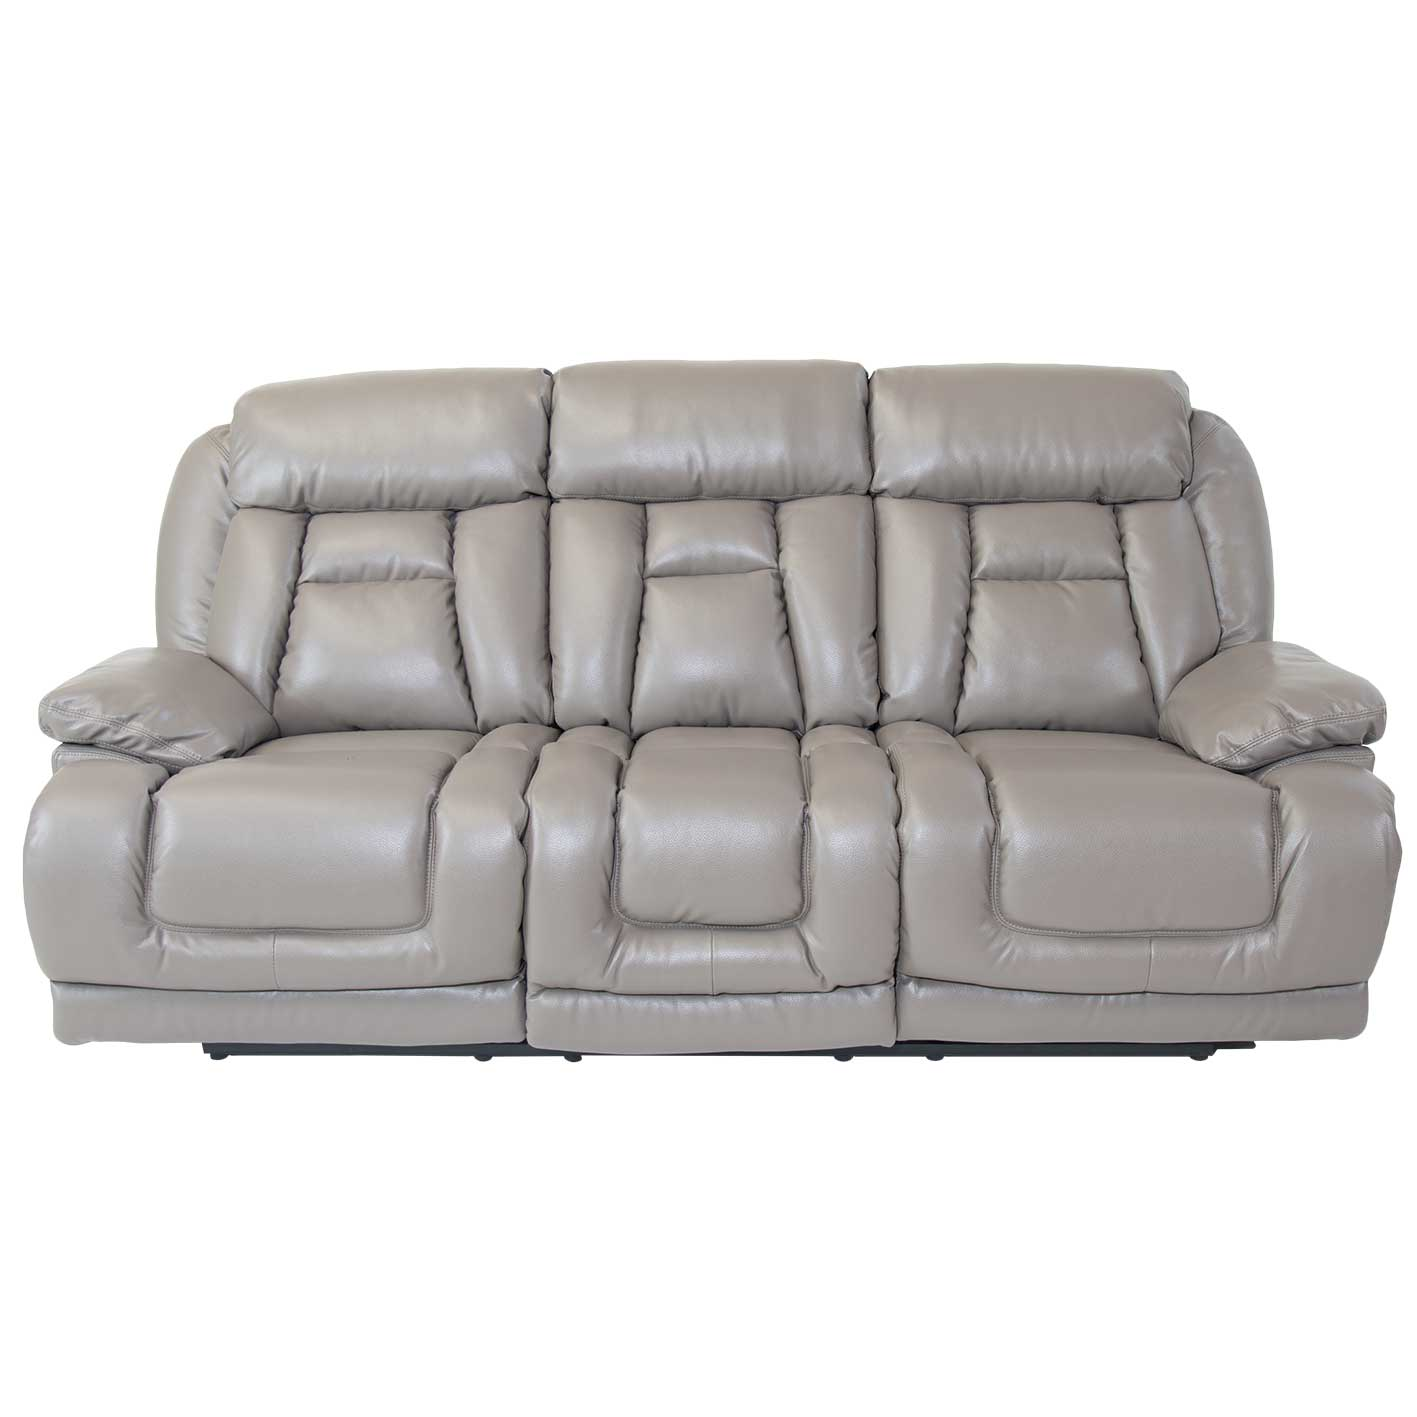 Recliner Lounge Zhej03 Recliner Lounge Suite Furniture Liquidation Warehouse